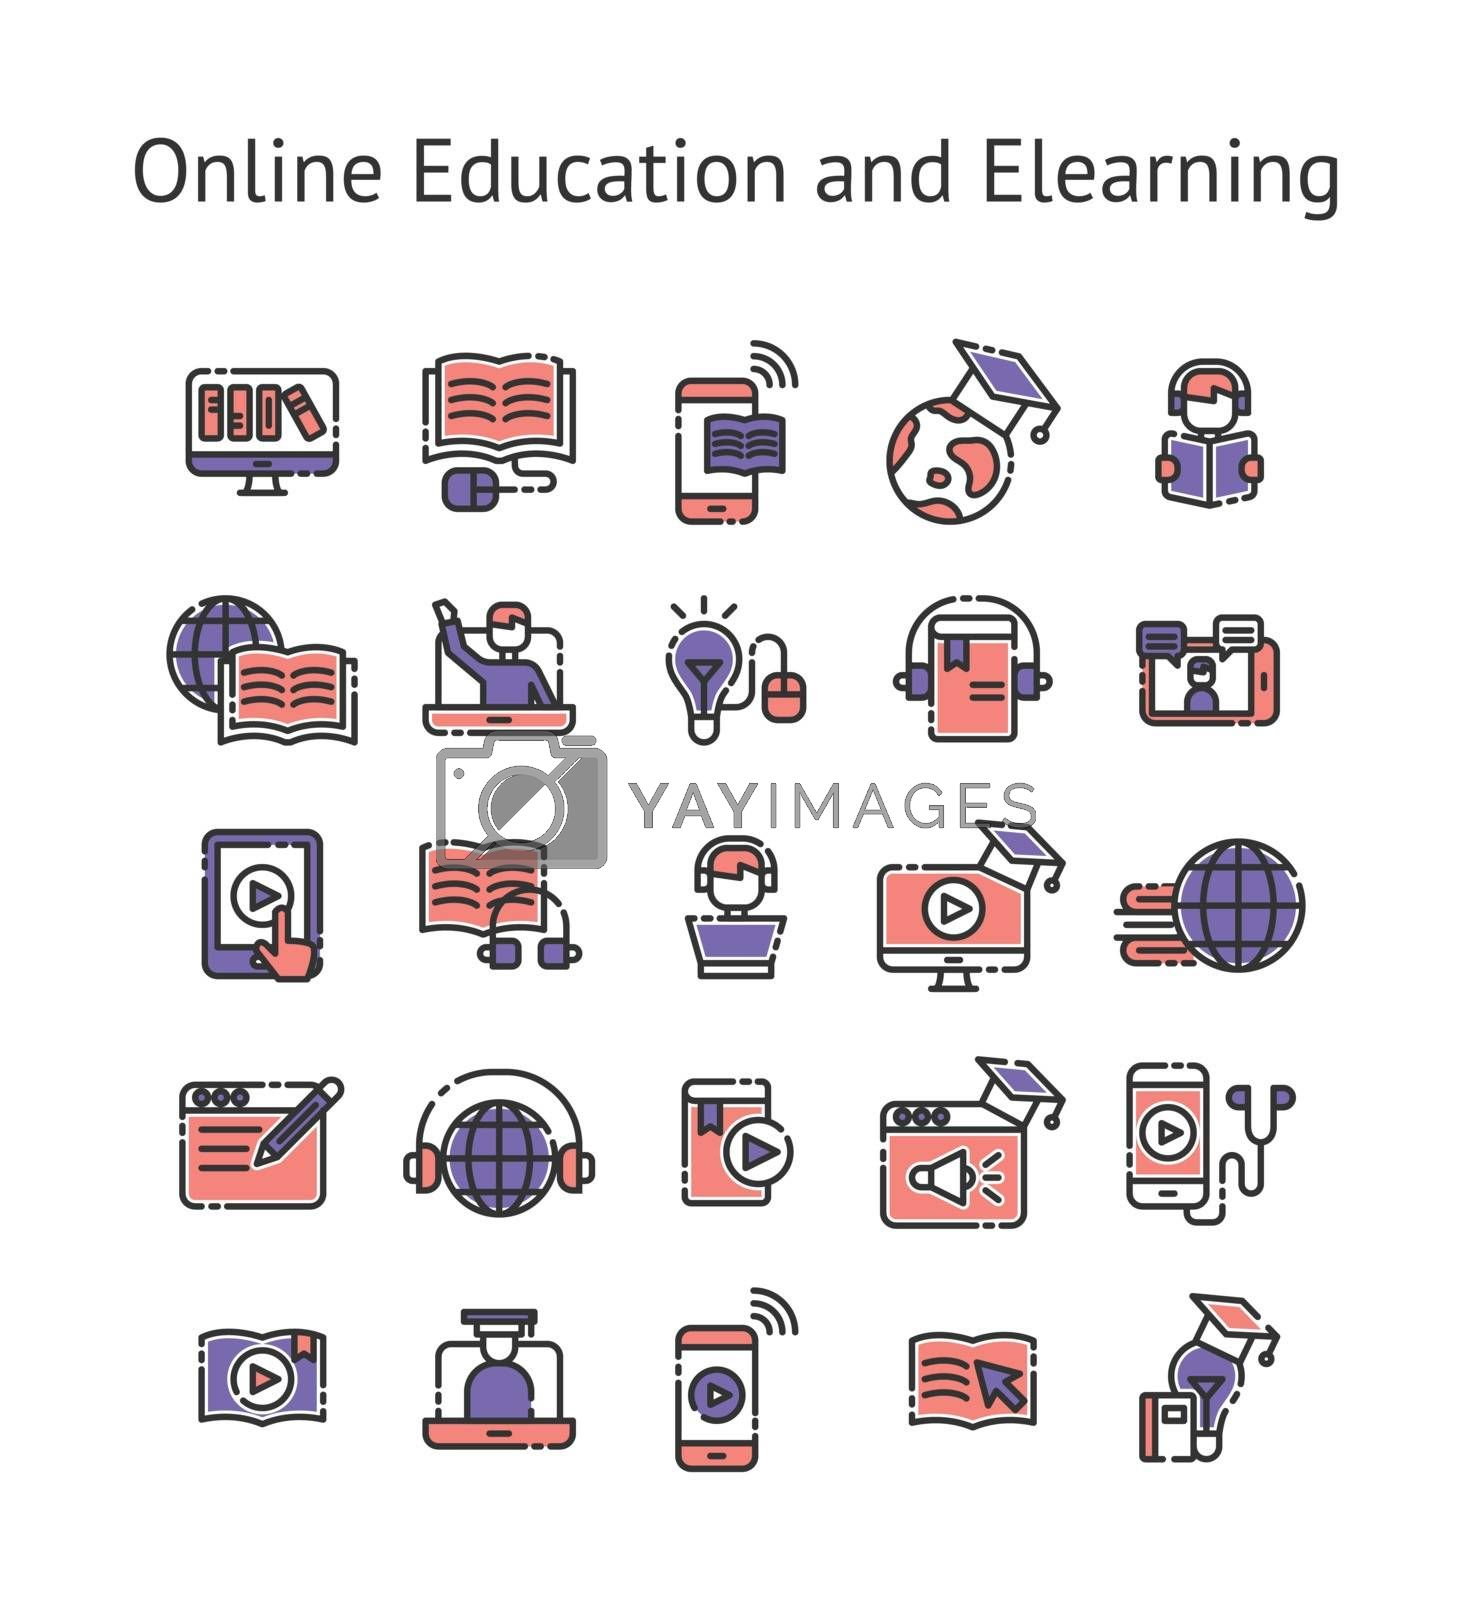 Online Education and Elearning filled outline icon set.